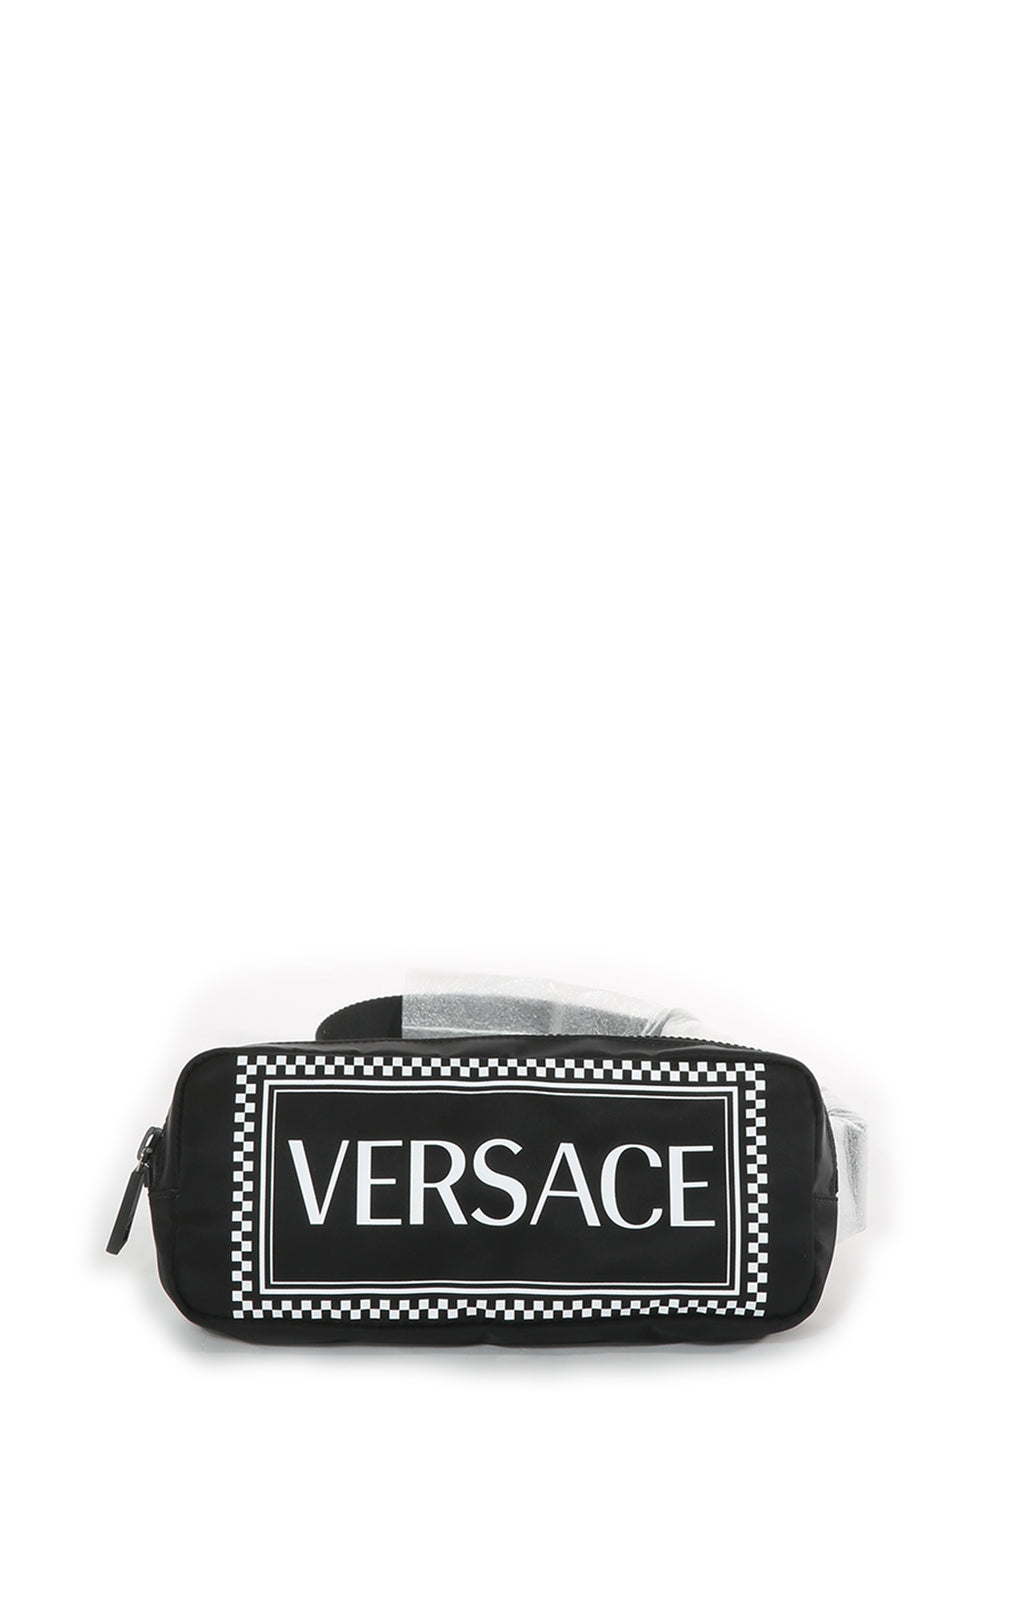 Front view of VERSACE Belt Bag Size: 9 in x 4 in x 2 in